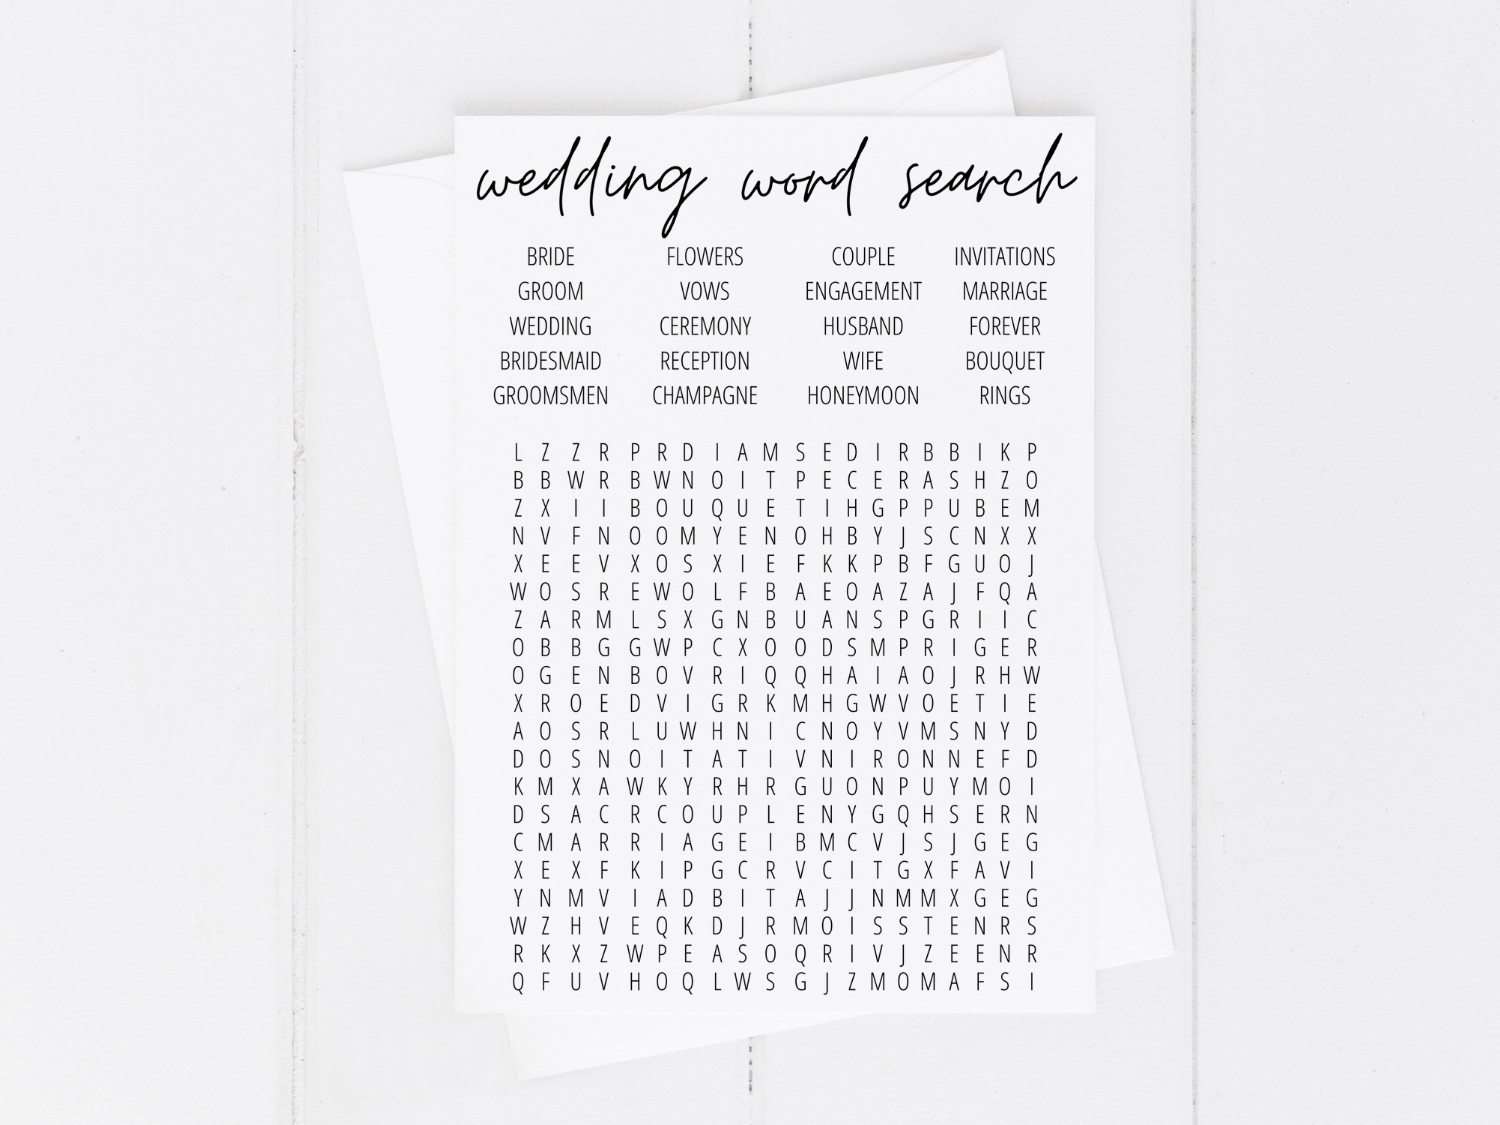 Bridal Shower Word Search Free Printable - Modern Moh